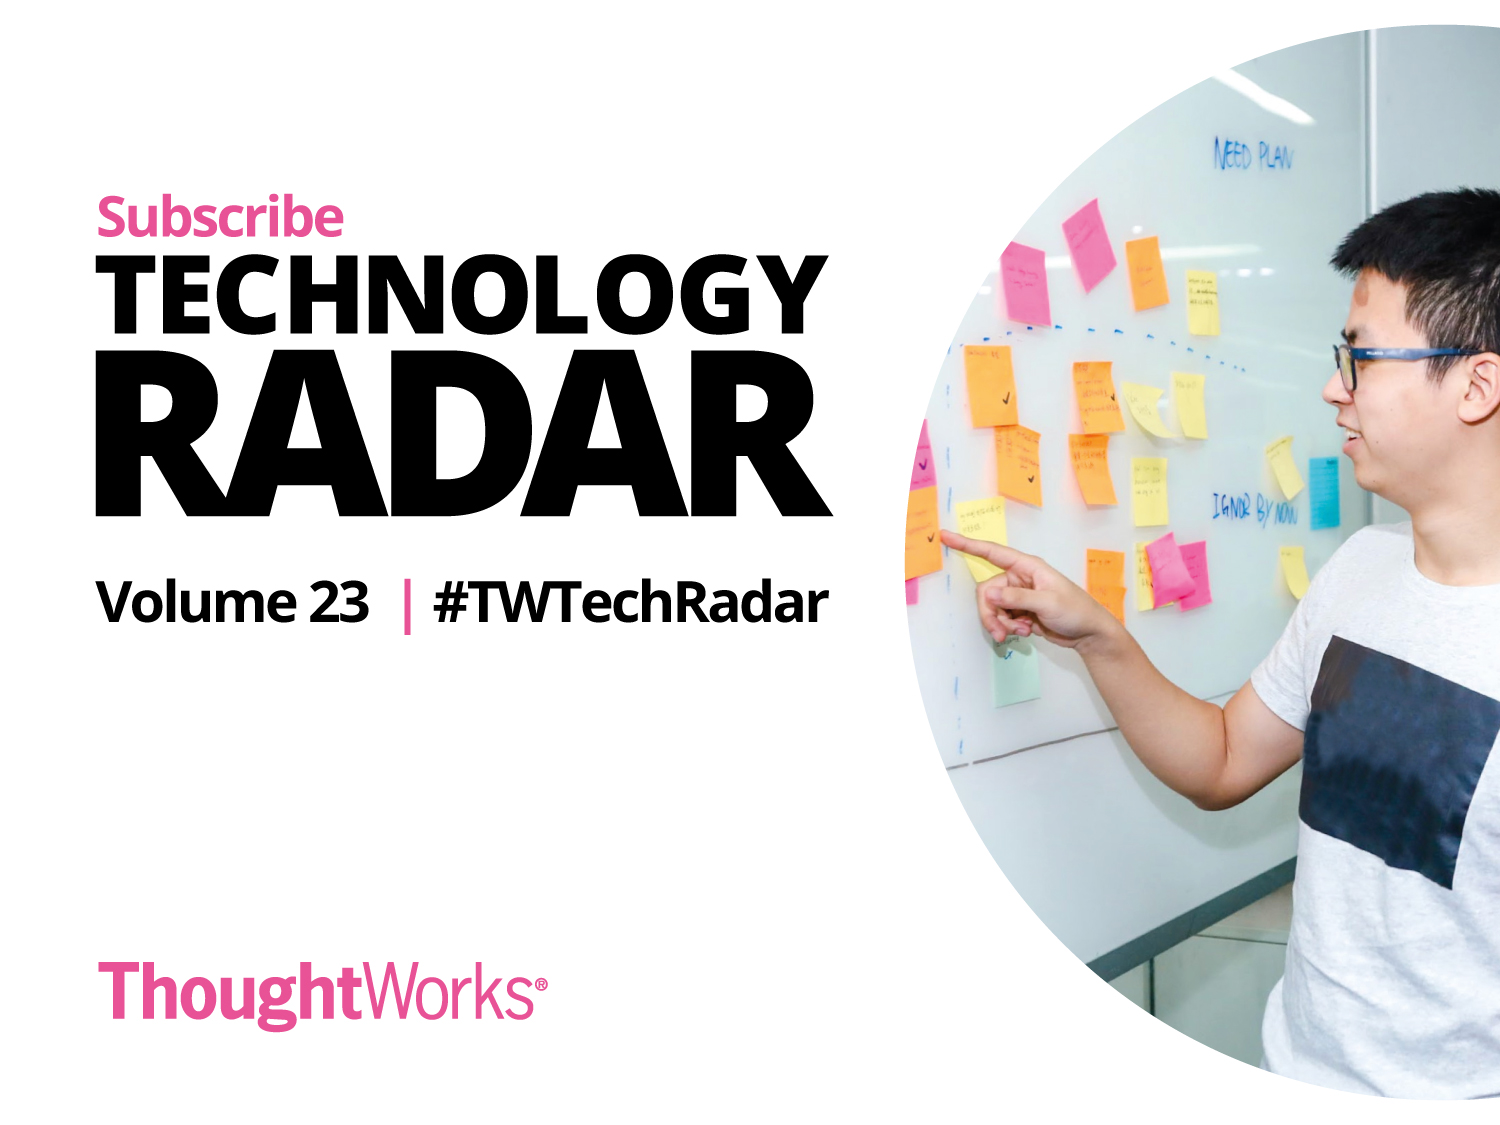 Subscribe to the Radar and receive tech-related content